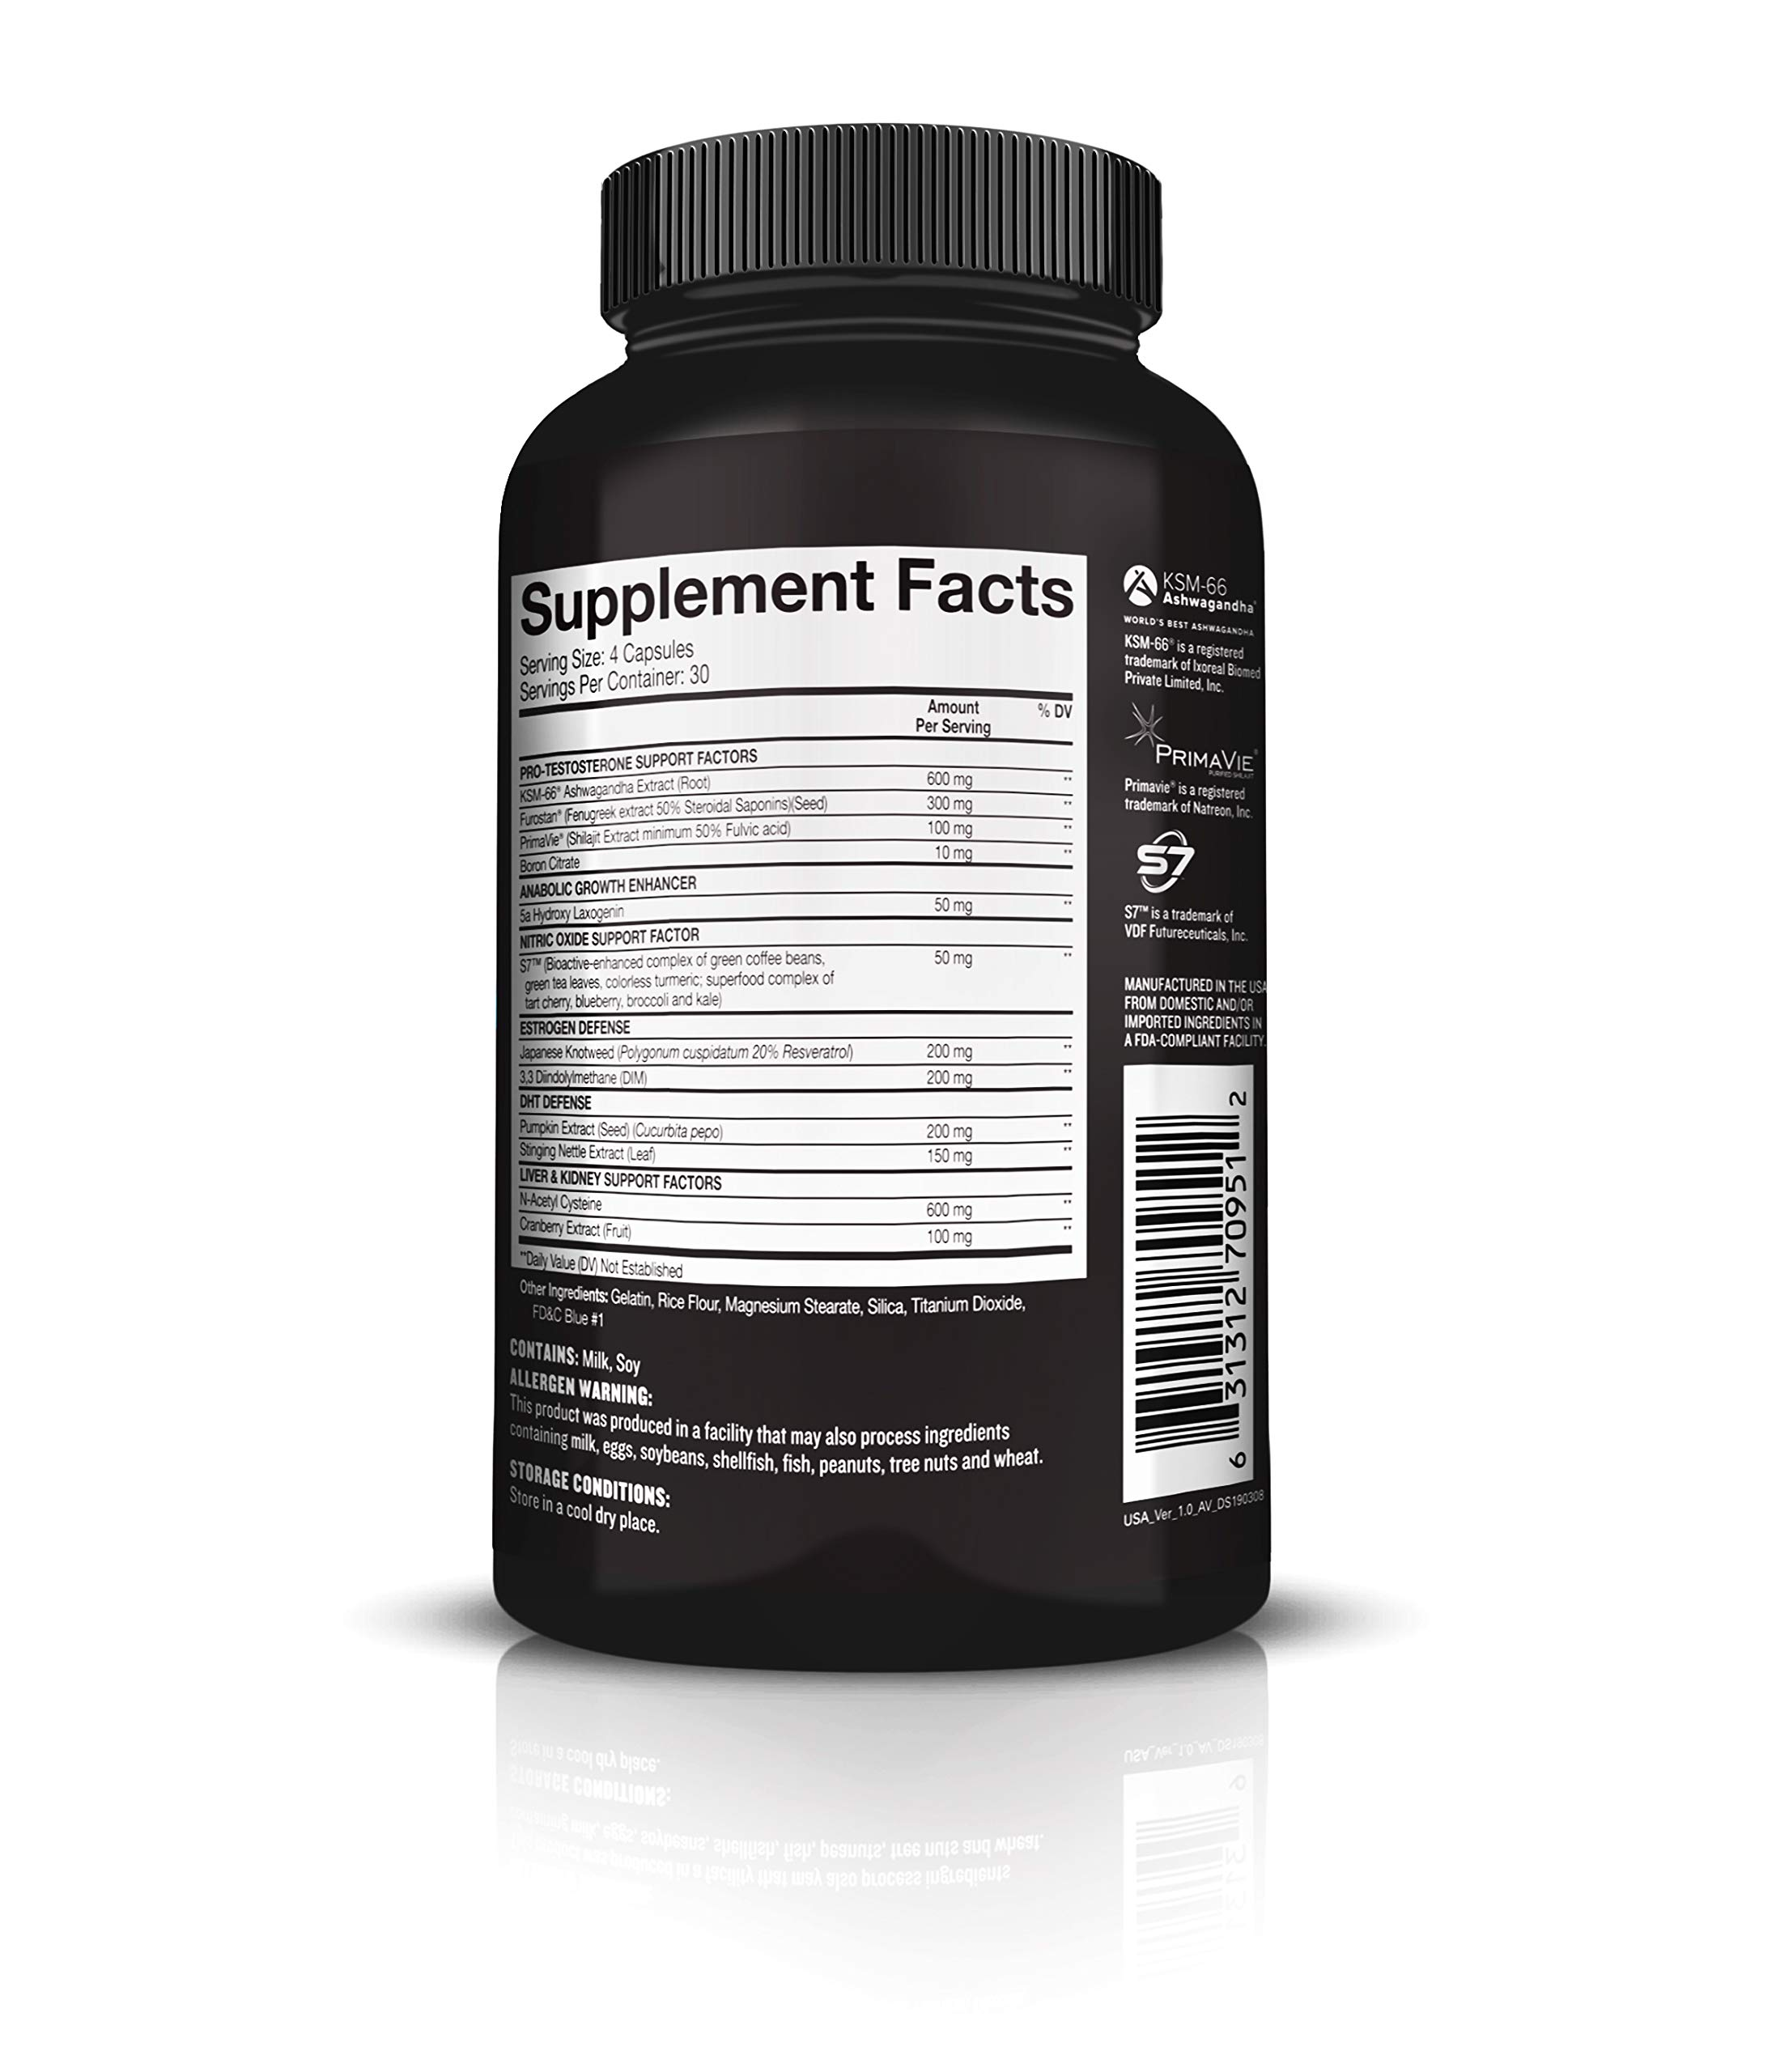 Beast Sports Nutrition - Super Test Maximum Caps - Ultra-Premium All-Inclusive Test Booster - Supports Your Natural Test Levels - Clinical Dosage w/KSM-66, Furostan, S7 & PrimaVie - 120 Capsules by Beast Sports Nutrition (Image #3)